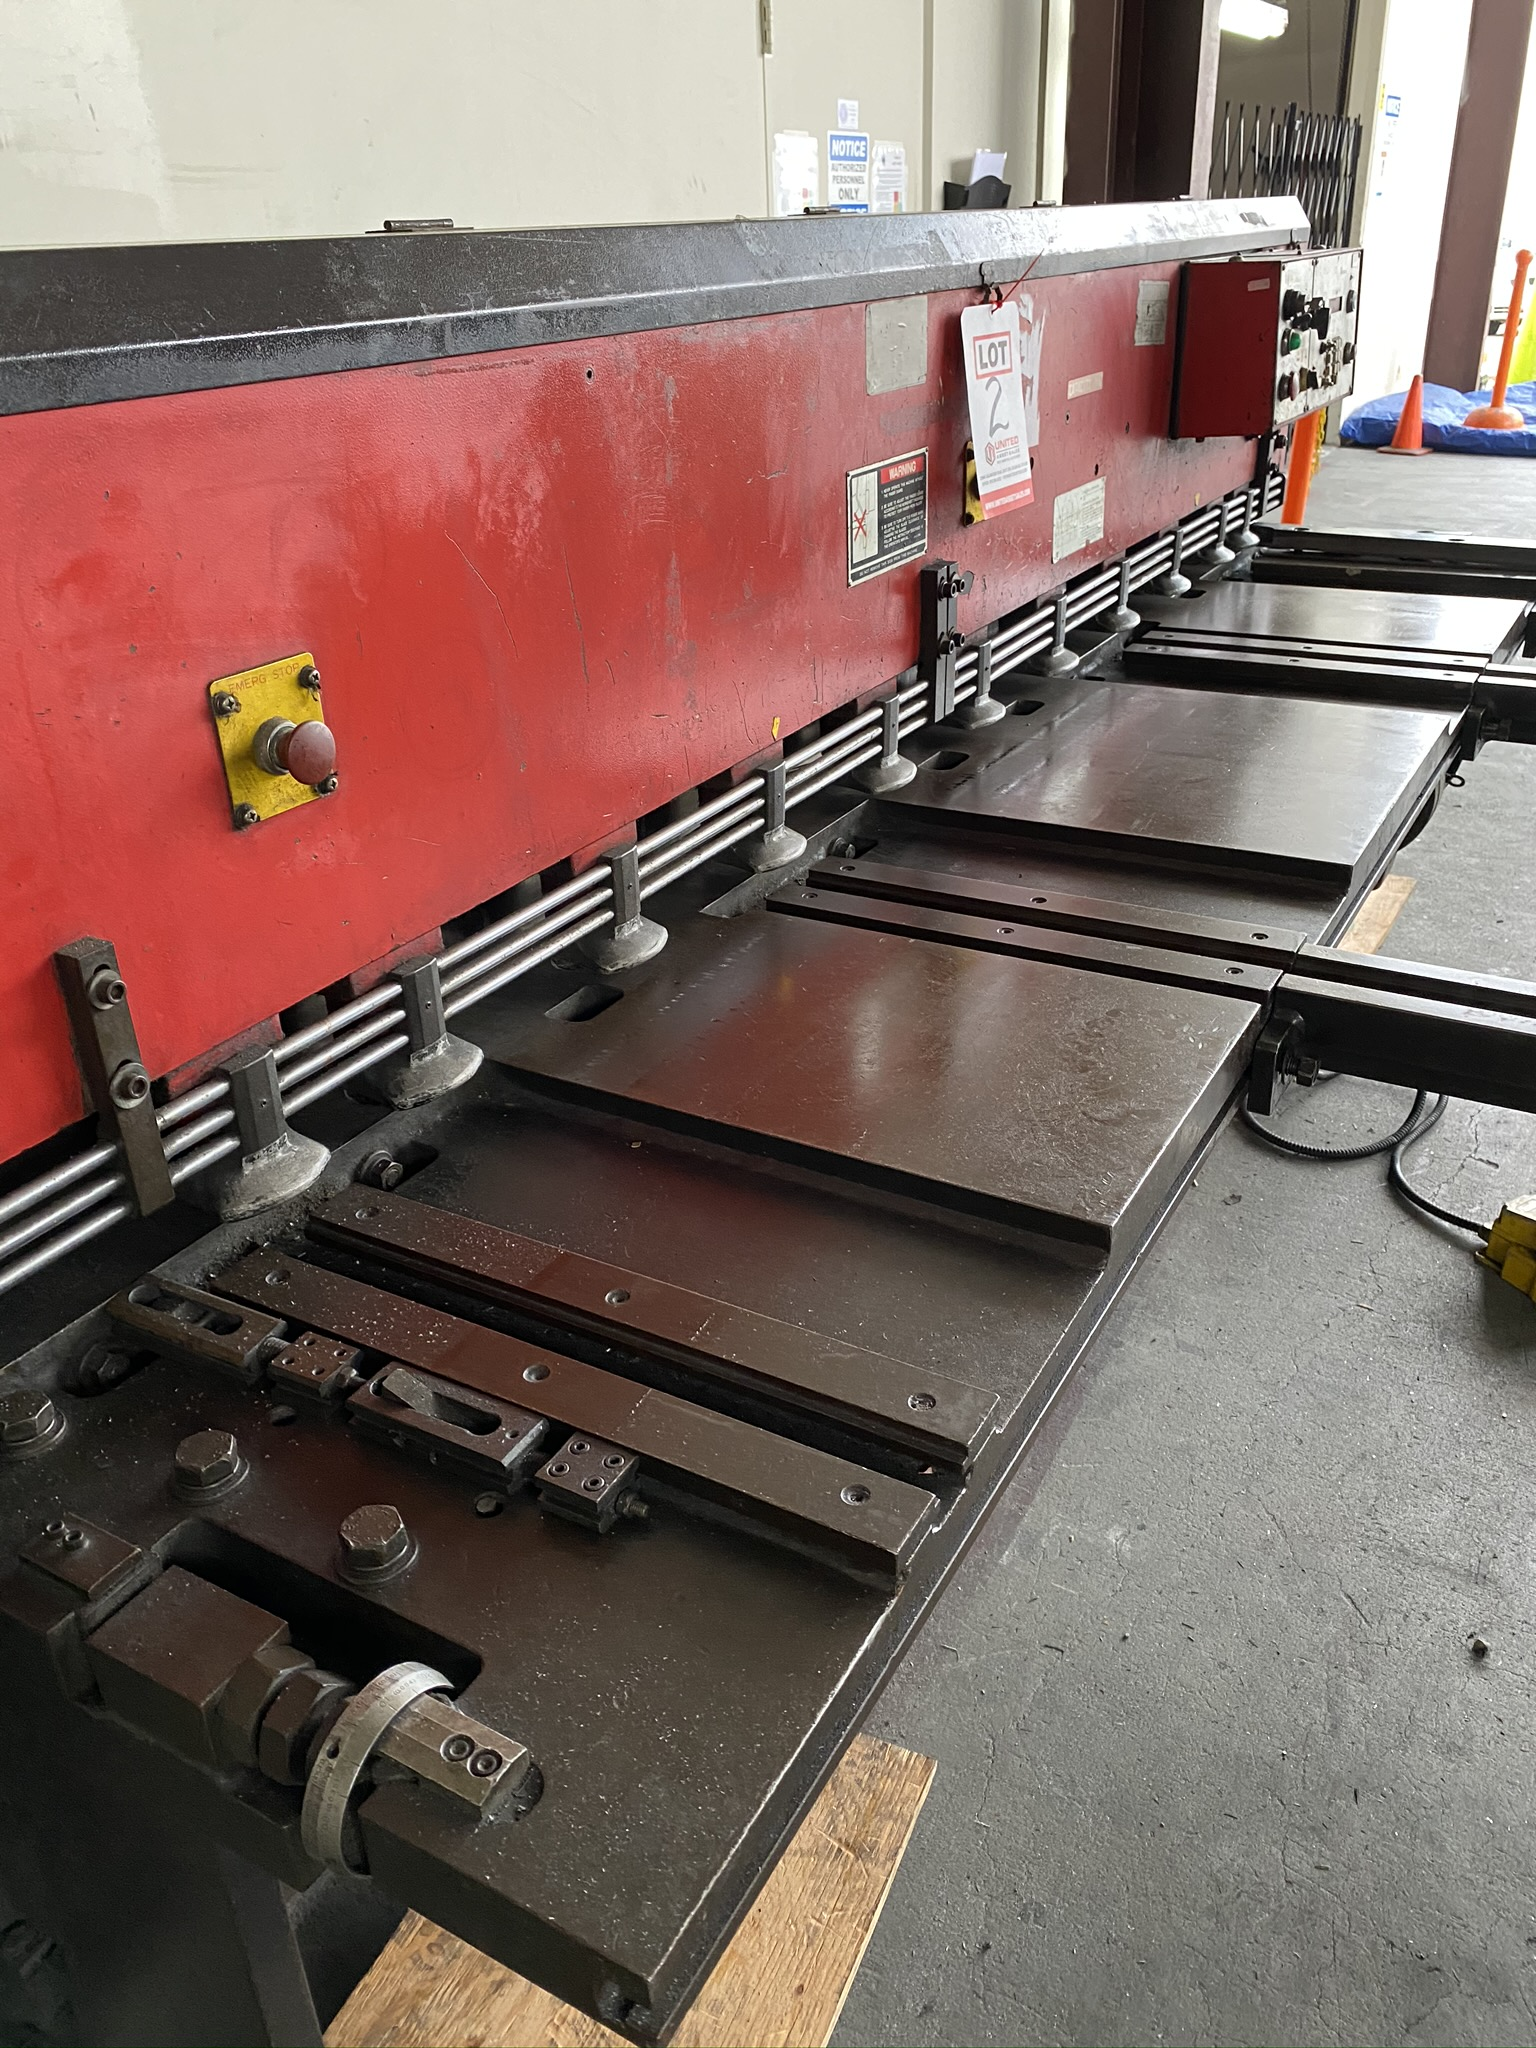 1990 AMADA M-2560 SHEAR, 2500 MM, LENGTH, 6 MM THICKNESS, MECHANICAL, SHEET SUPPORTS - Image 4 of 14